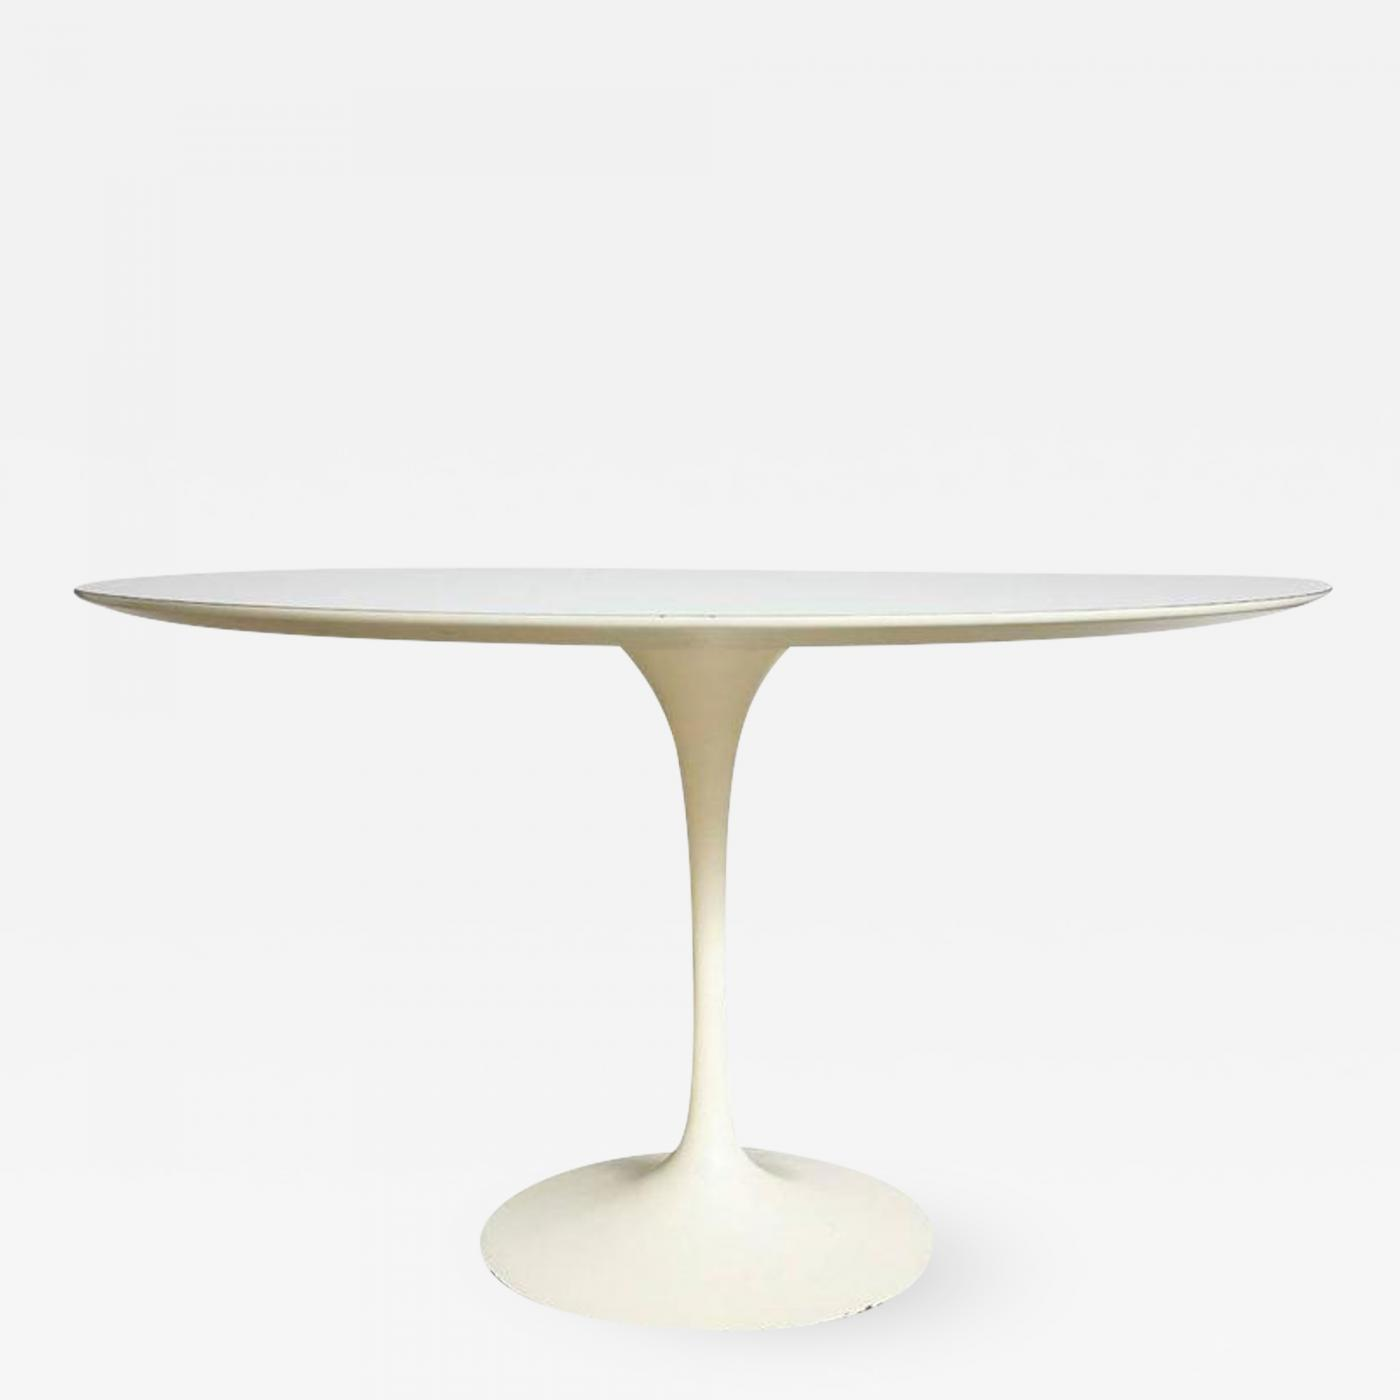 Saarinen Knoll Table Eero Saarinen Saarinen Knoll Dining Table White Laminate Usa 1960s